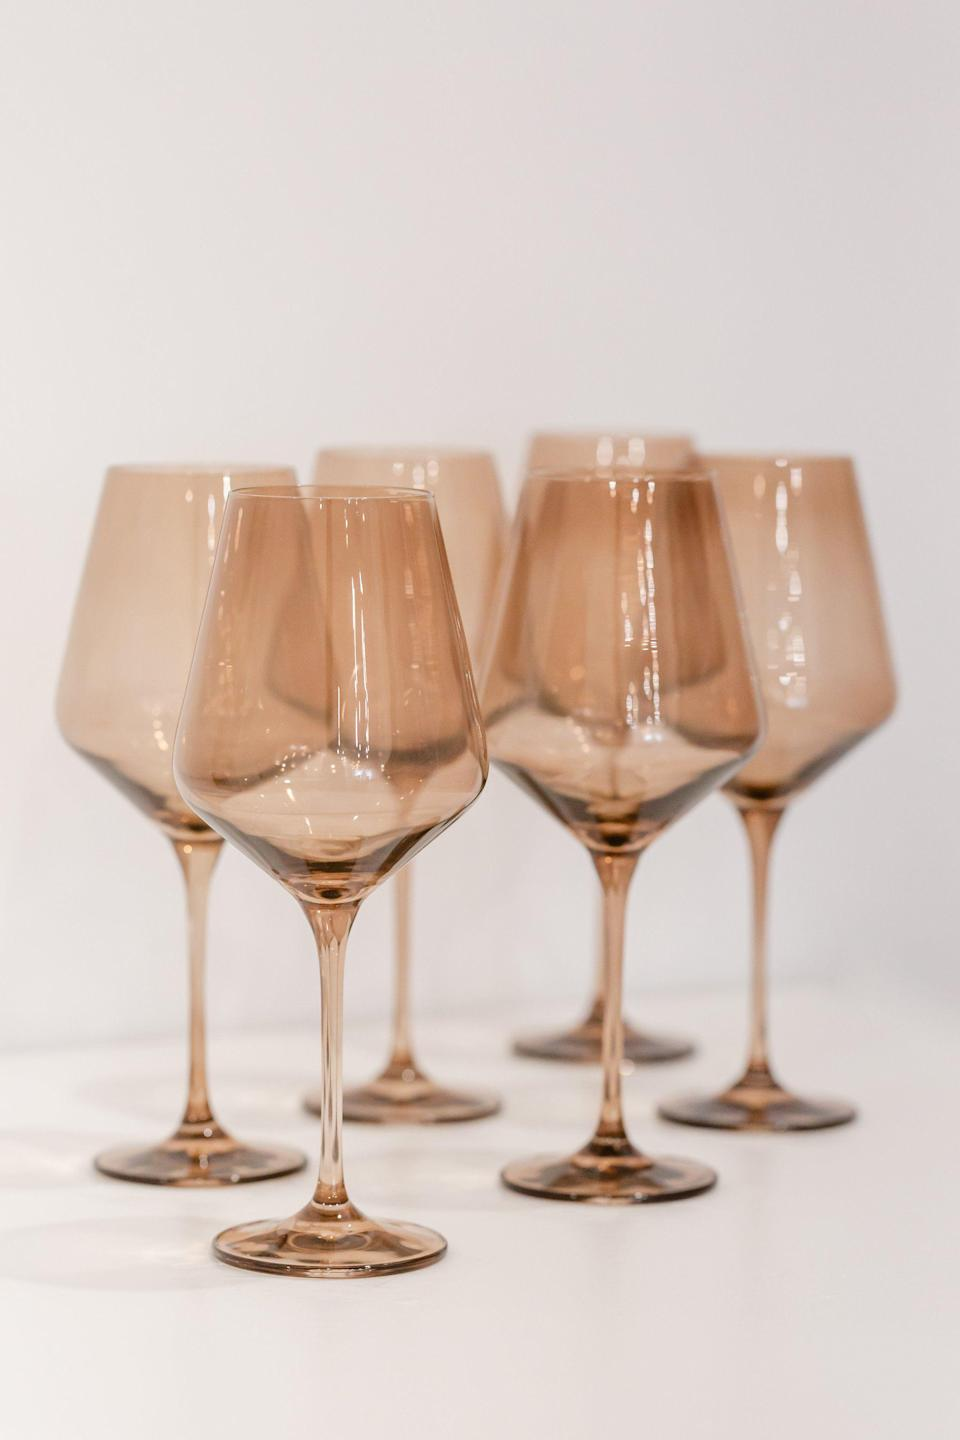 "<p><strong>Estelle Colored Glass</strong></p><p>estellecoloredglass.com</p><p><strong>$175.00</strong></p><p><a href=""https://www.estellecoloredglass.com/collections/glassware/products/estelle-colored-wine-stemware-smoke"" rel=""nofollow noopener"" target=""_blank"" data-ylk=""slk:Shop Now"" class=""link rapid-noclick-resp"">Shop Now</a></p><p>Estelle's colored-glass stemware, available in a set of six, is a great gift for the friend who loves to host. </p>"